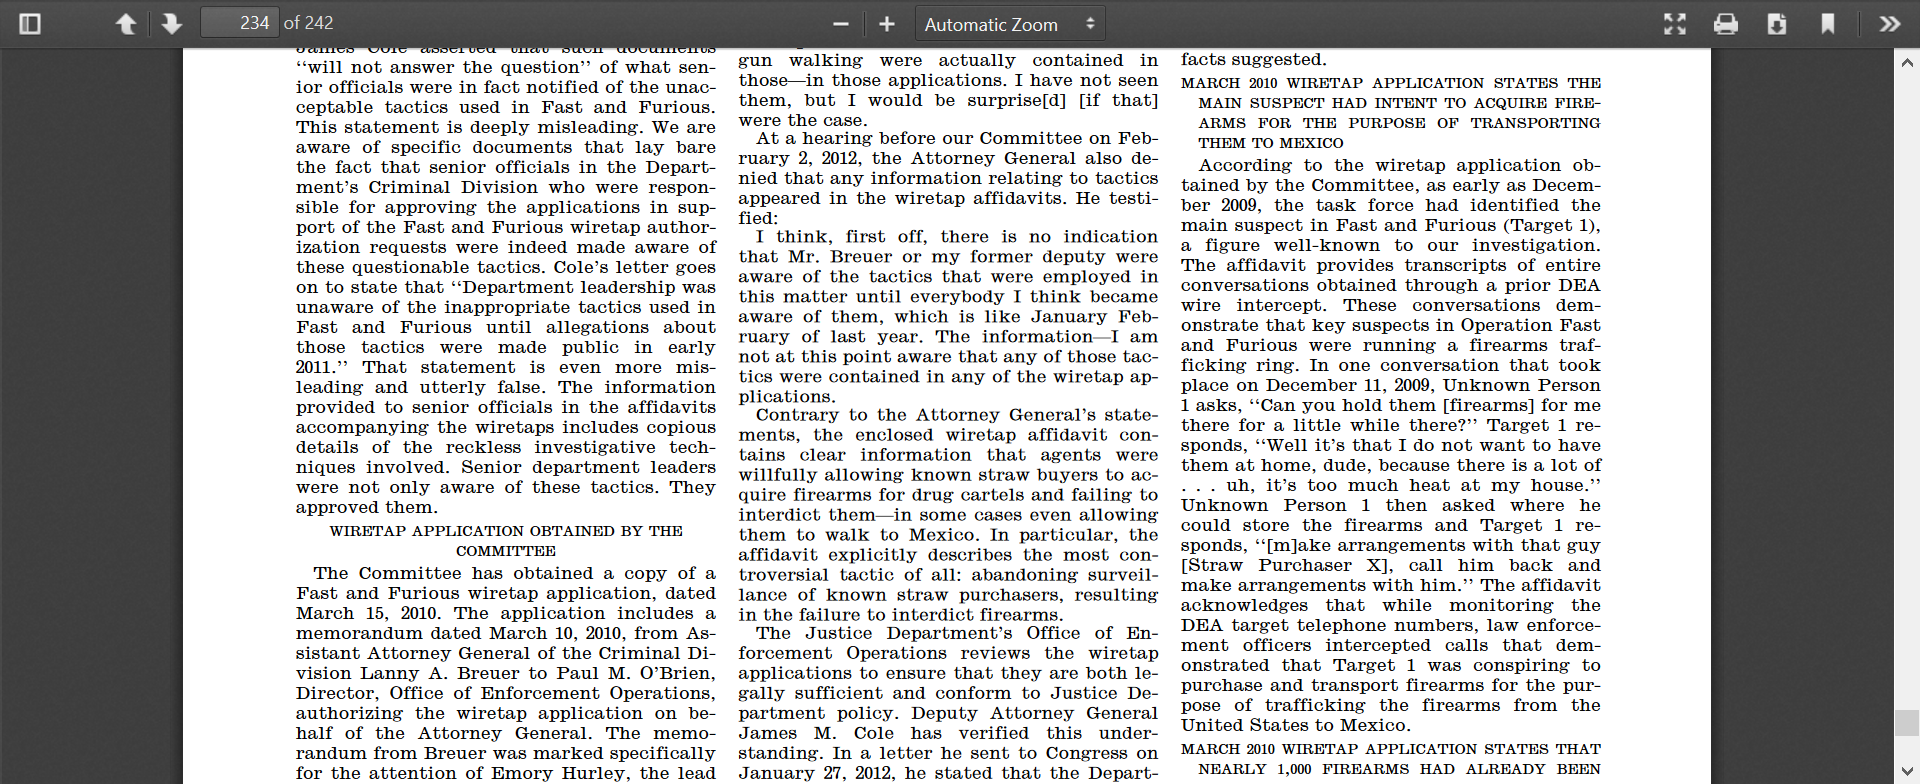 Blanco page 234 warant info in Cong Rec.png